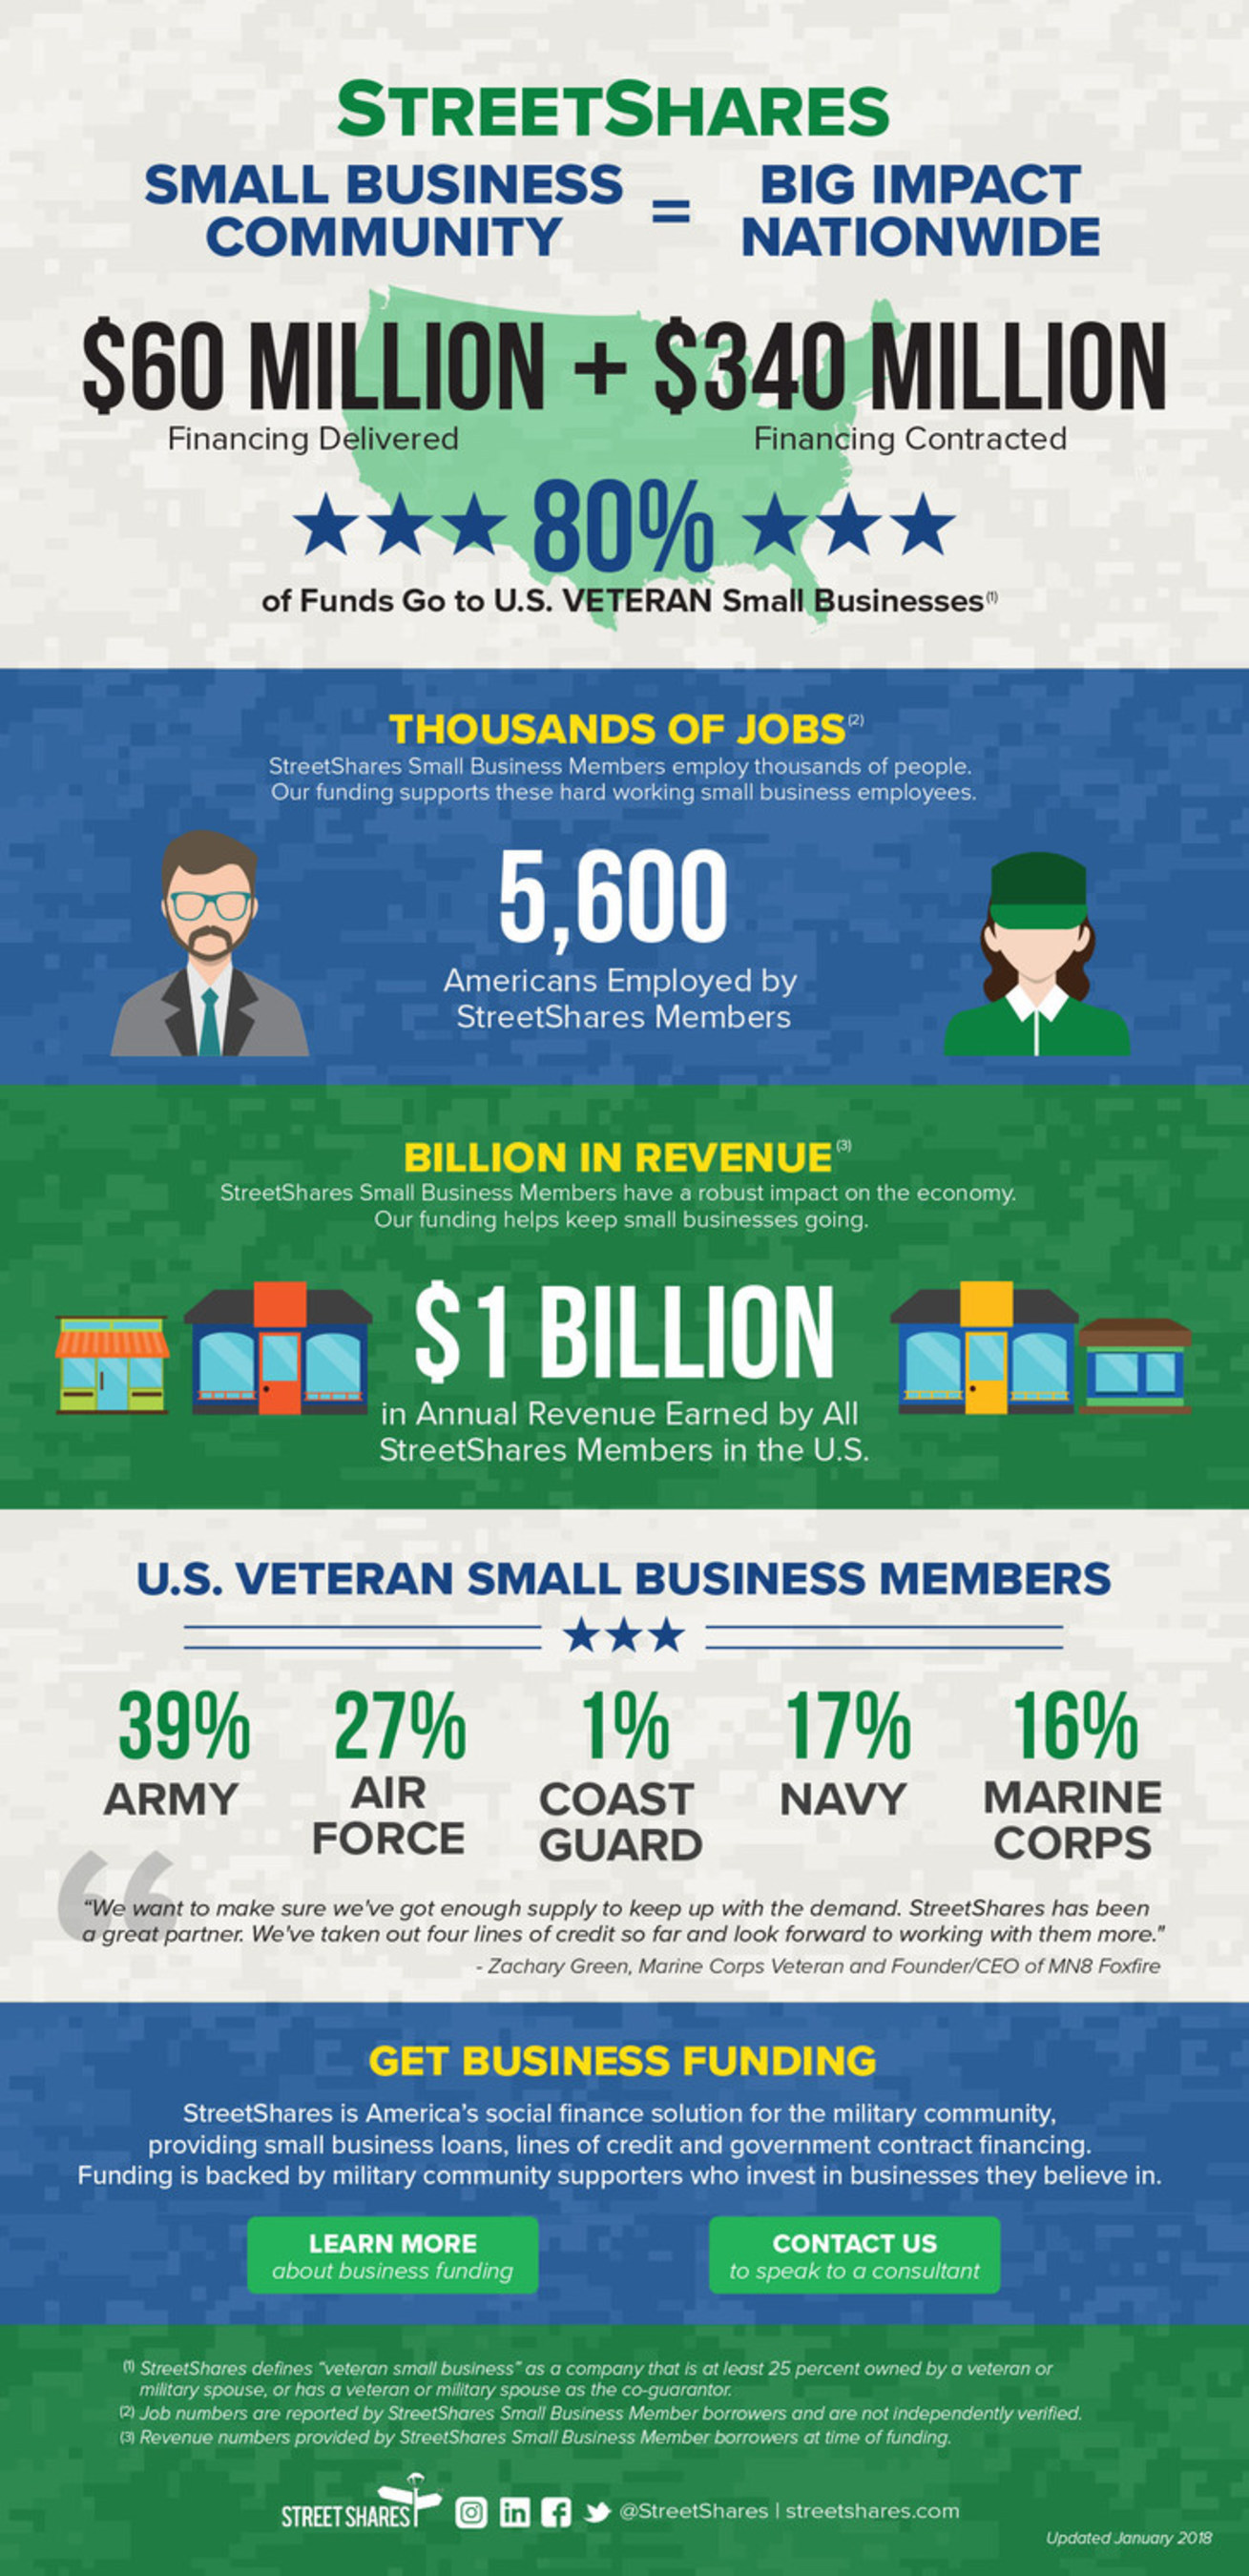 As the leader in providing specialty finance products for the veteran and military community, including small business loans and alternative investment products such as Veteran Business Bonds, StreetShares contributes greatly to the overall economy. Discover the millions of dollars we fund to small businesses, thousands of jobs we support and the millions of dollars of revenue our funding helps in keeping small businesses operating. Our focus on the veteran business community shows for itself.